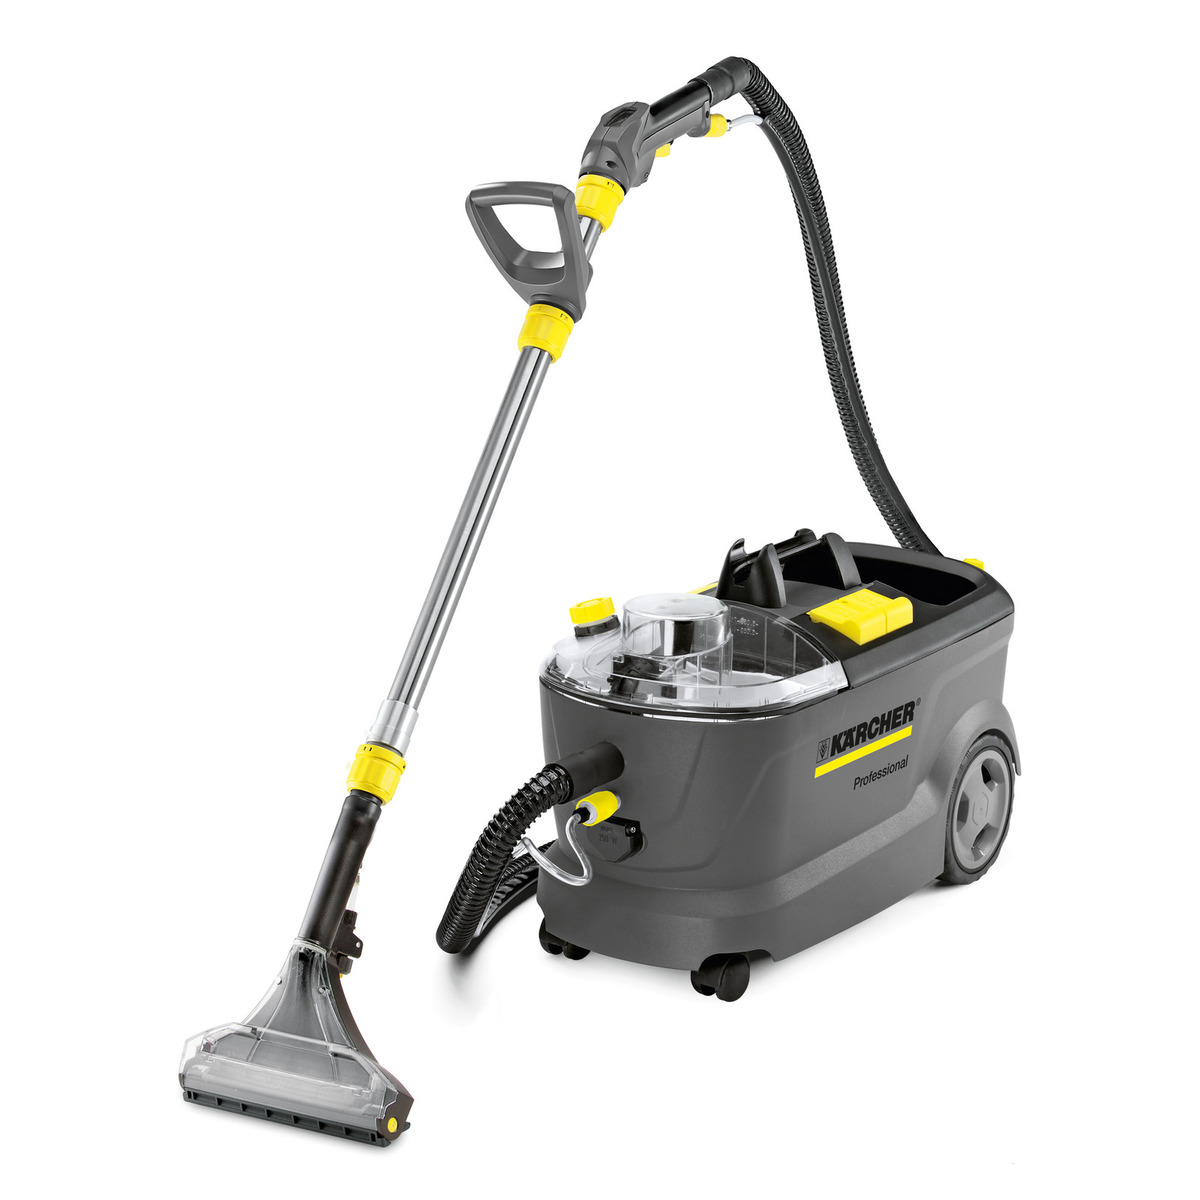 Karcher Carpet & Upholstery Spray Extraction Cleaner PUZZI 10/2